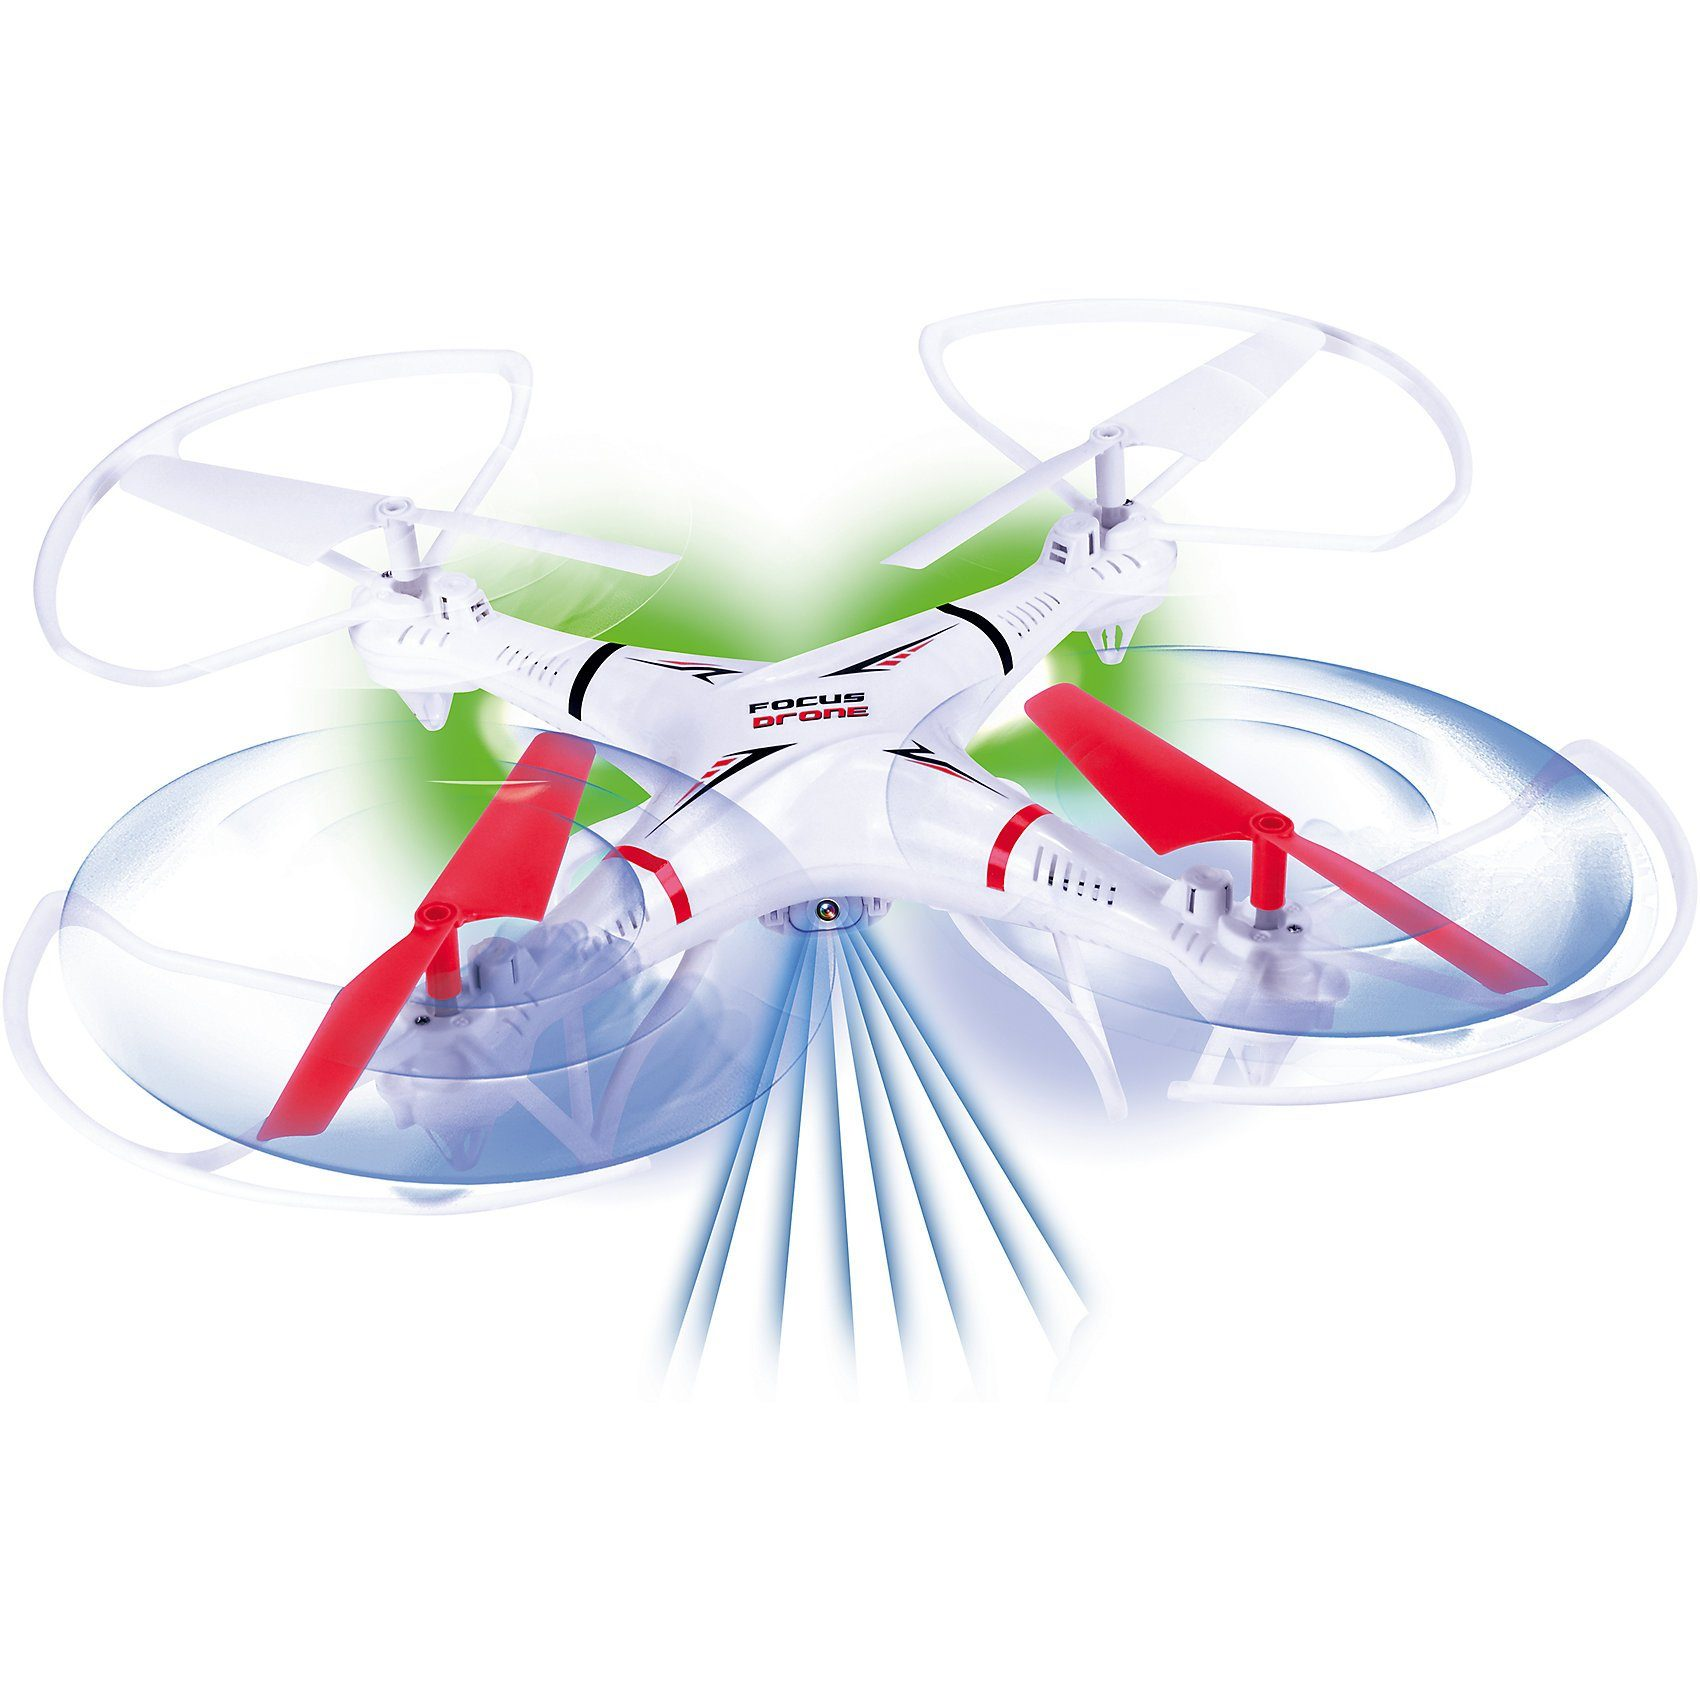 Gear2Play RC Quadrocopter Focus Drone 2,4 GHz mit Kamera